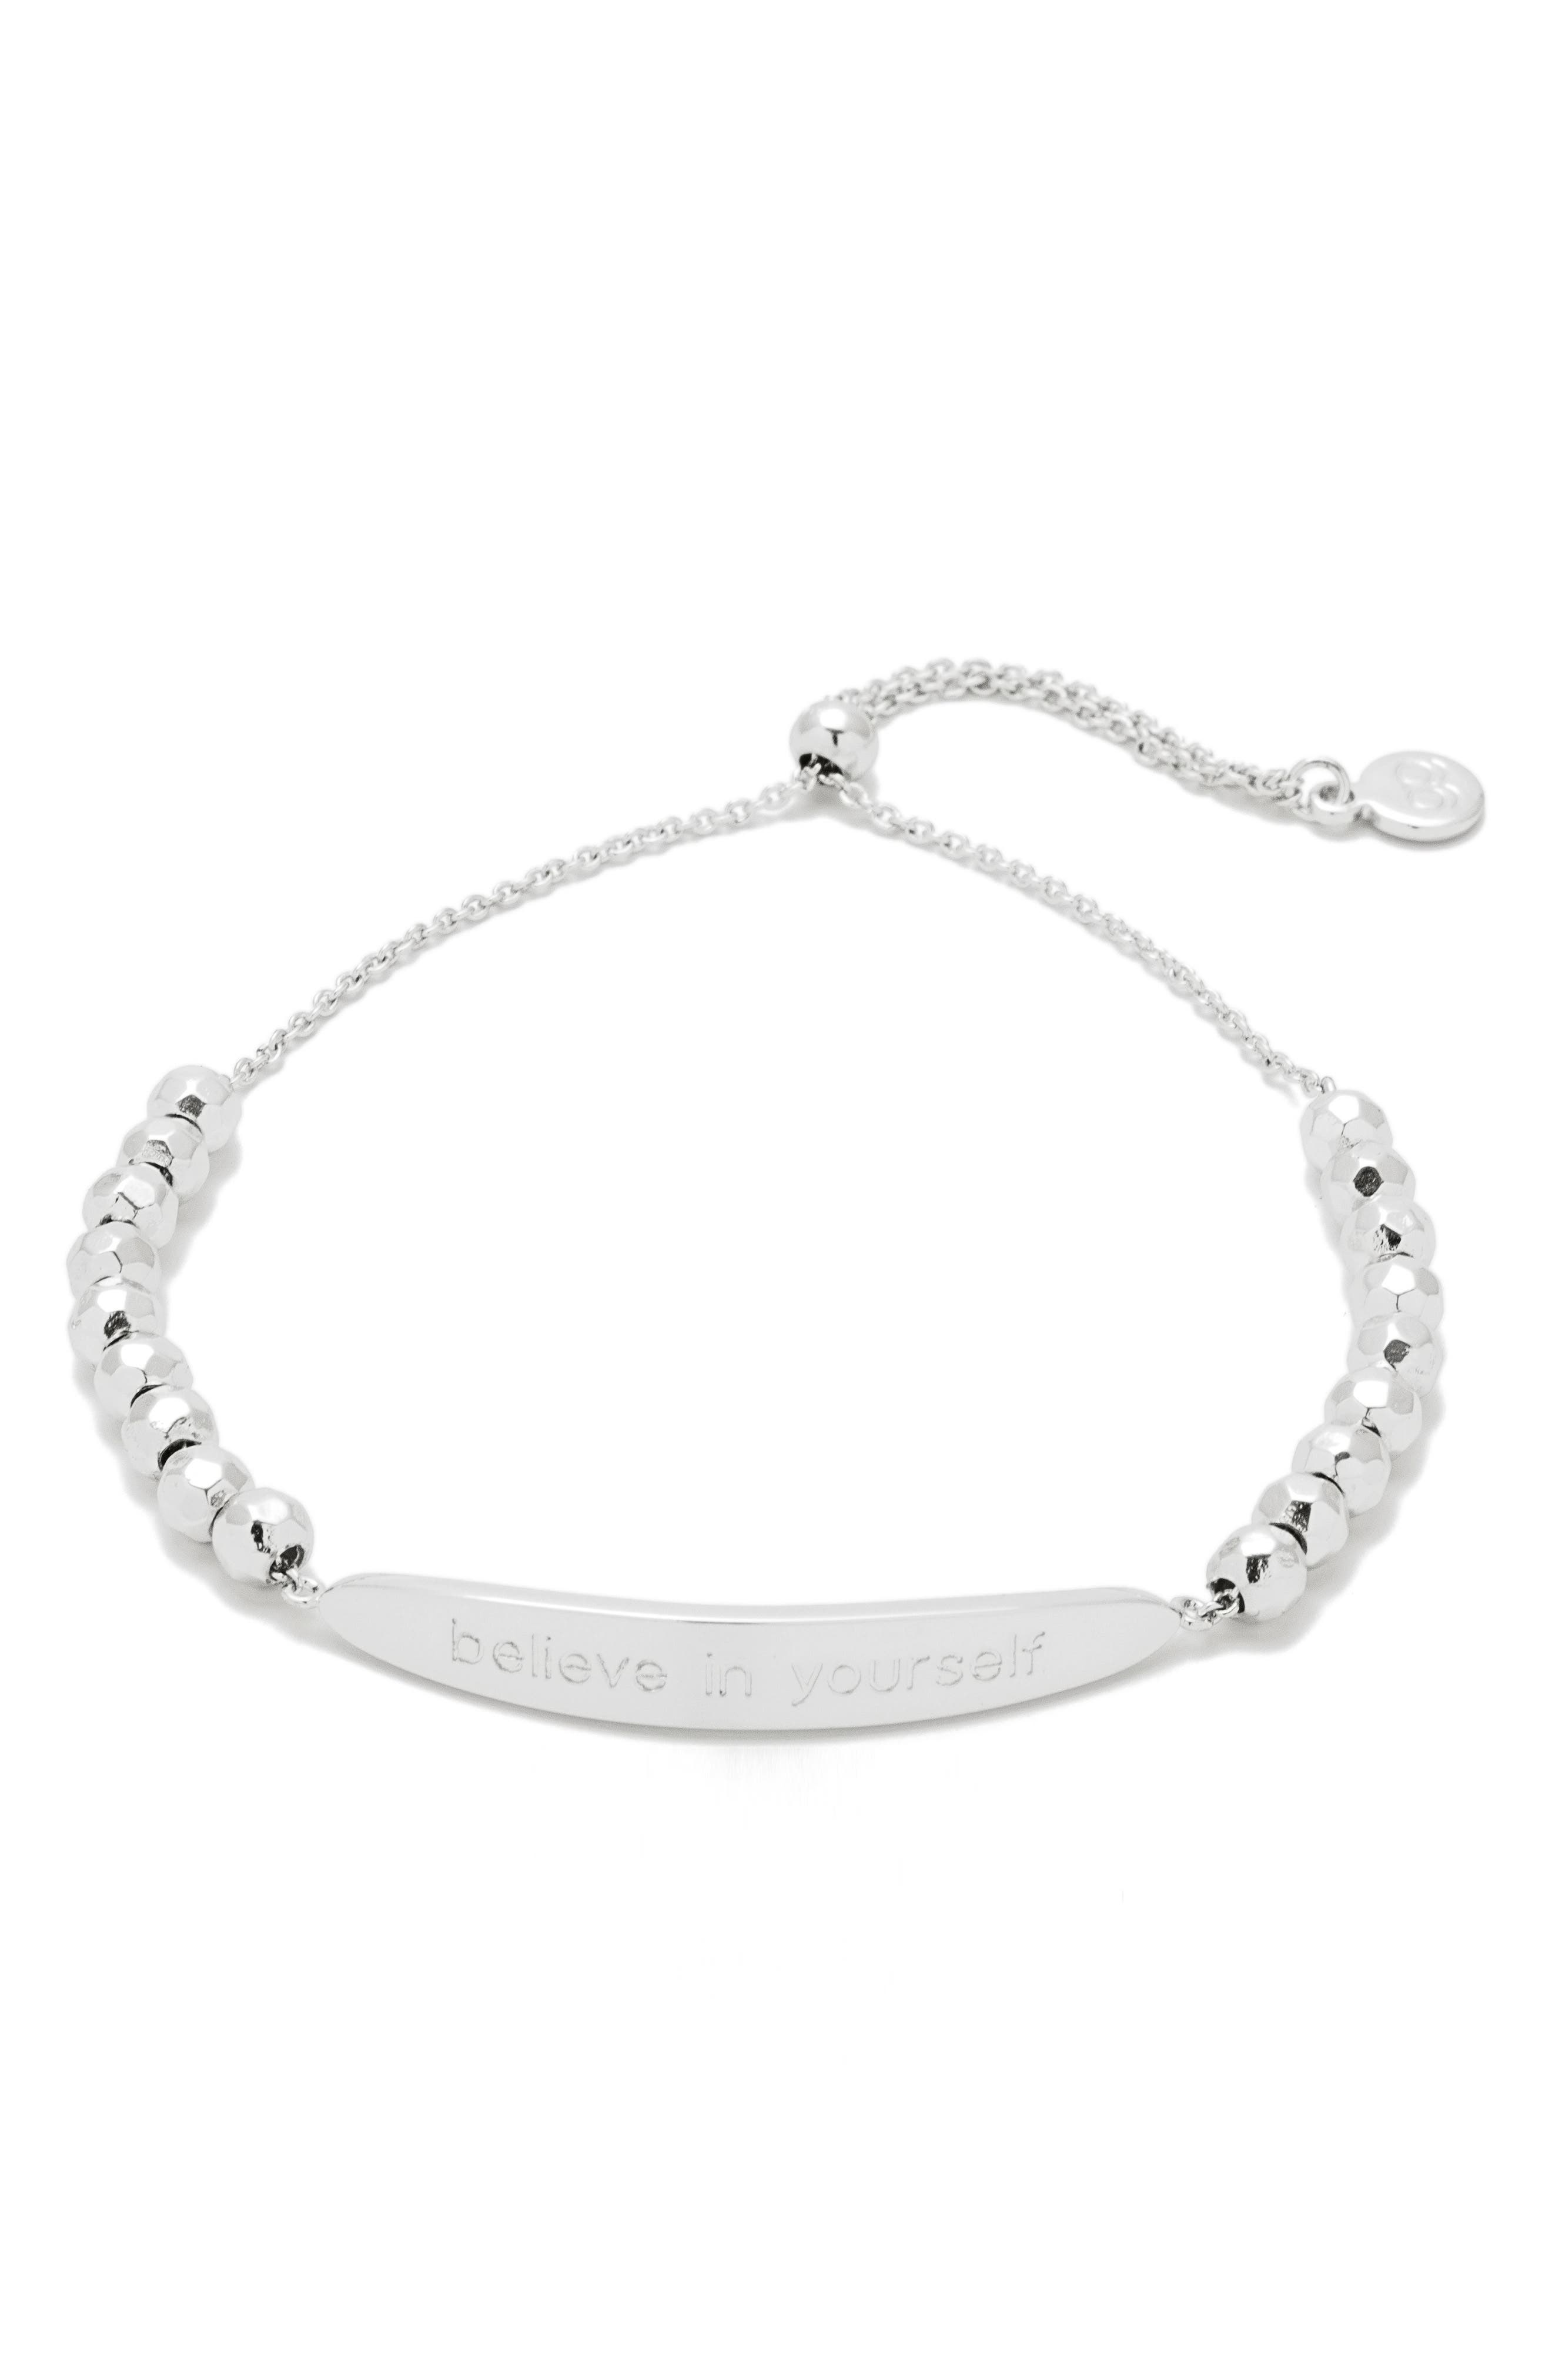 Power Intention Believe in Yourself Bracelet,                         Main,                         color, 049